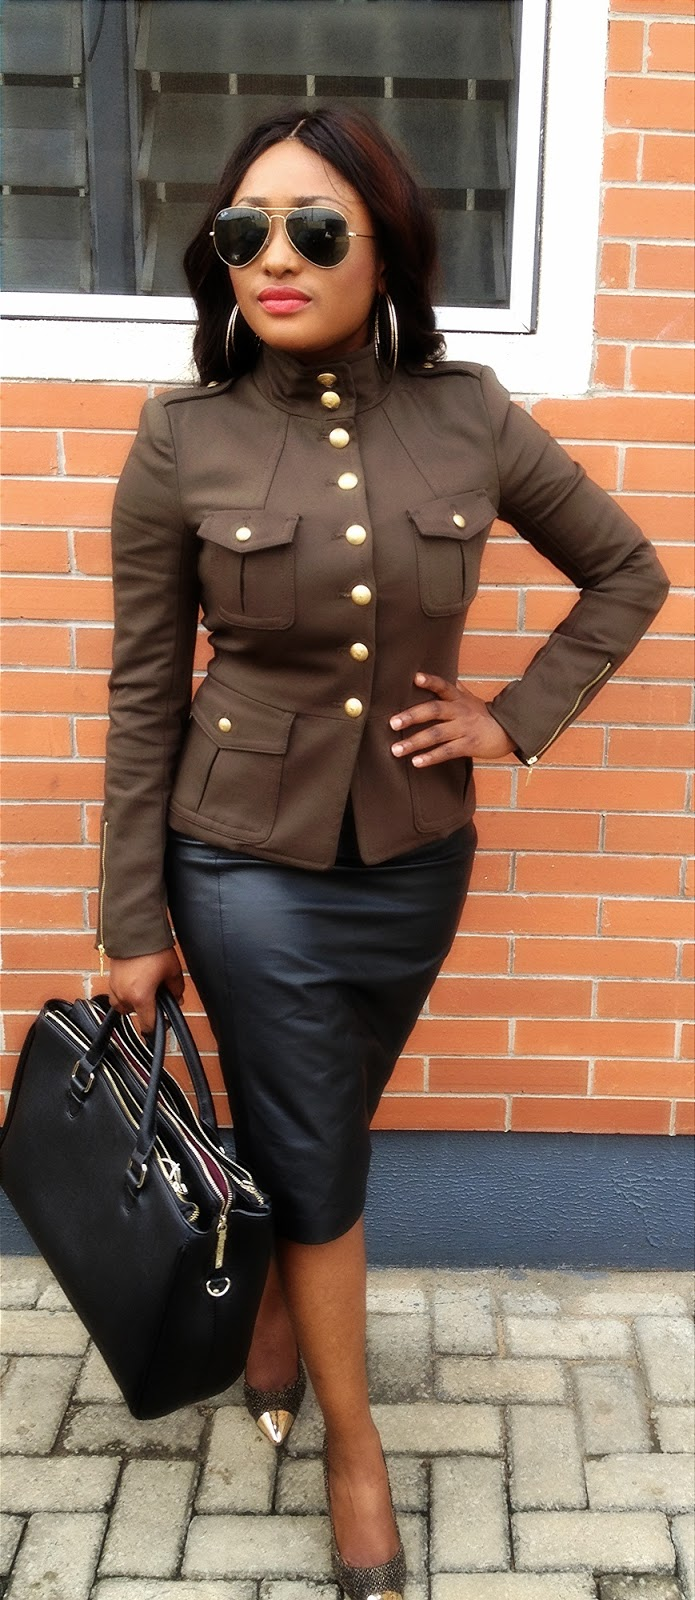 b231ec2e63 It has this expensive edgy look..I'm wearing a military jacket with gold  button details on a genuine leather skirt ... Don't y'all love this look?